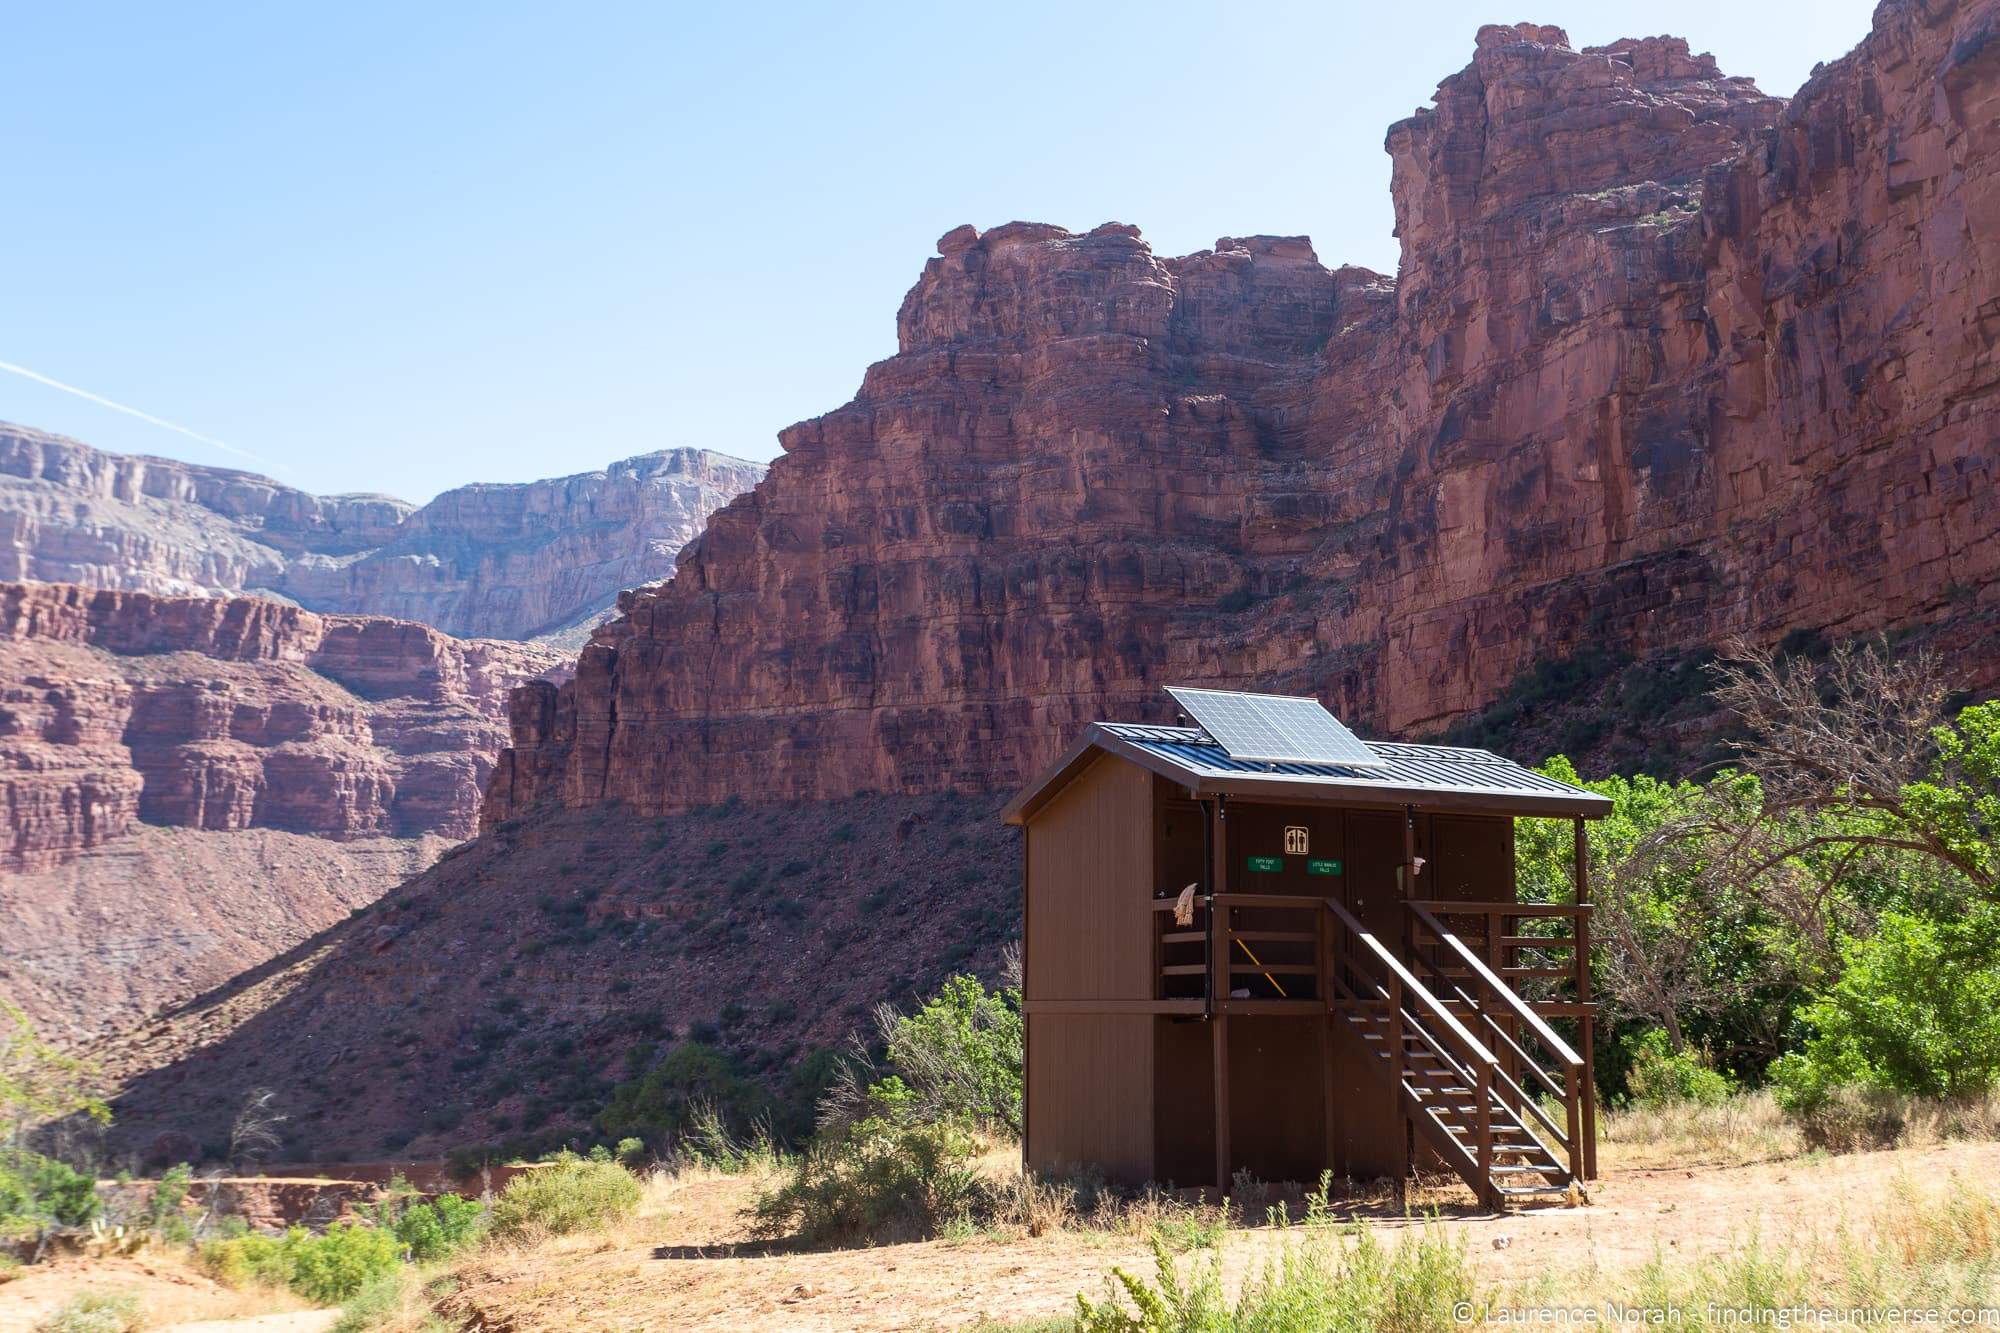 Toilet at Havasu Falls